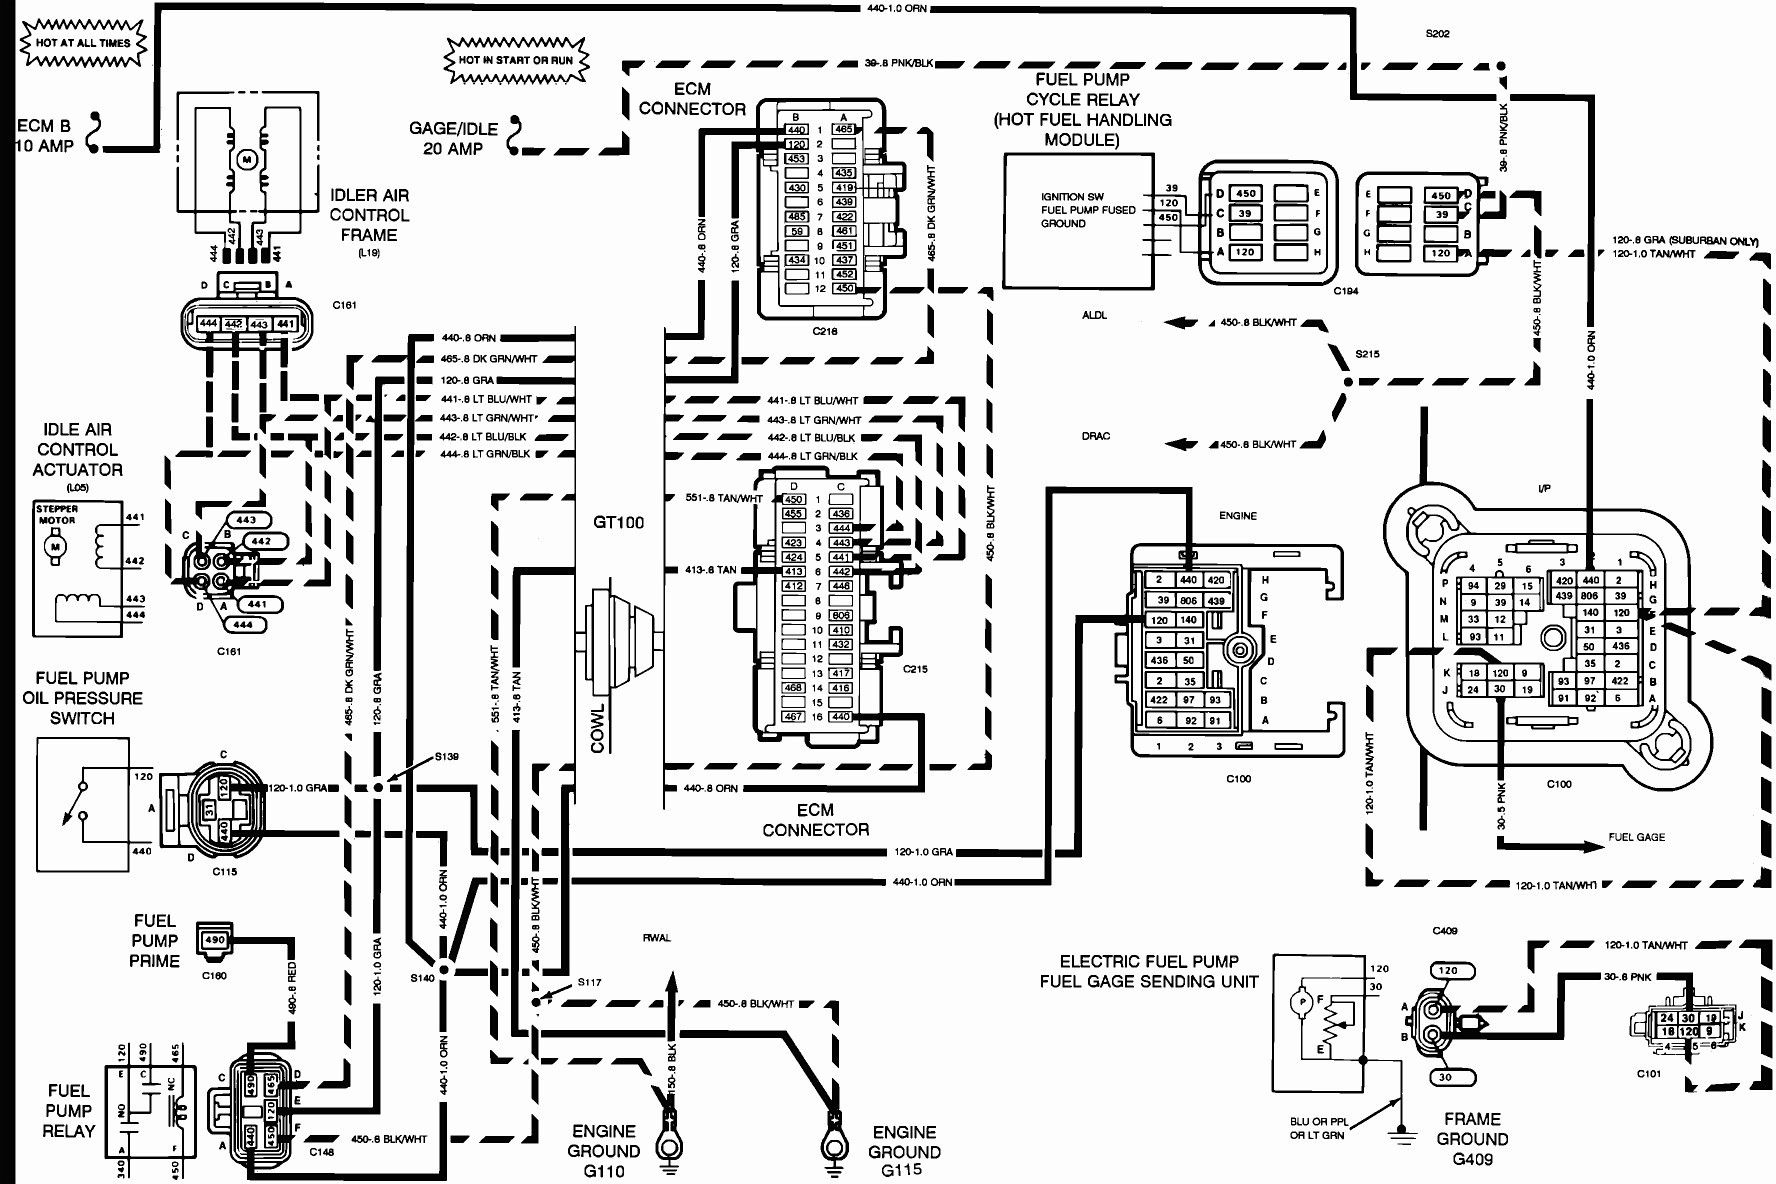 2004 fleetwood rv wiring diagram full hd version wiring diagram -  thomdiagram.as4a.fr  diagram database - as4a.fr